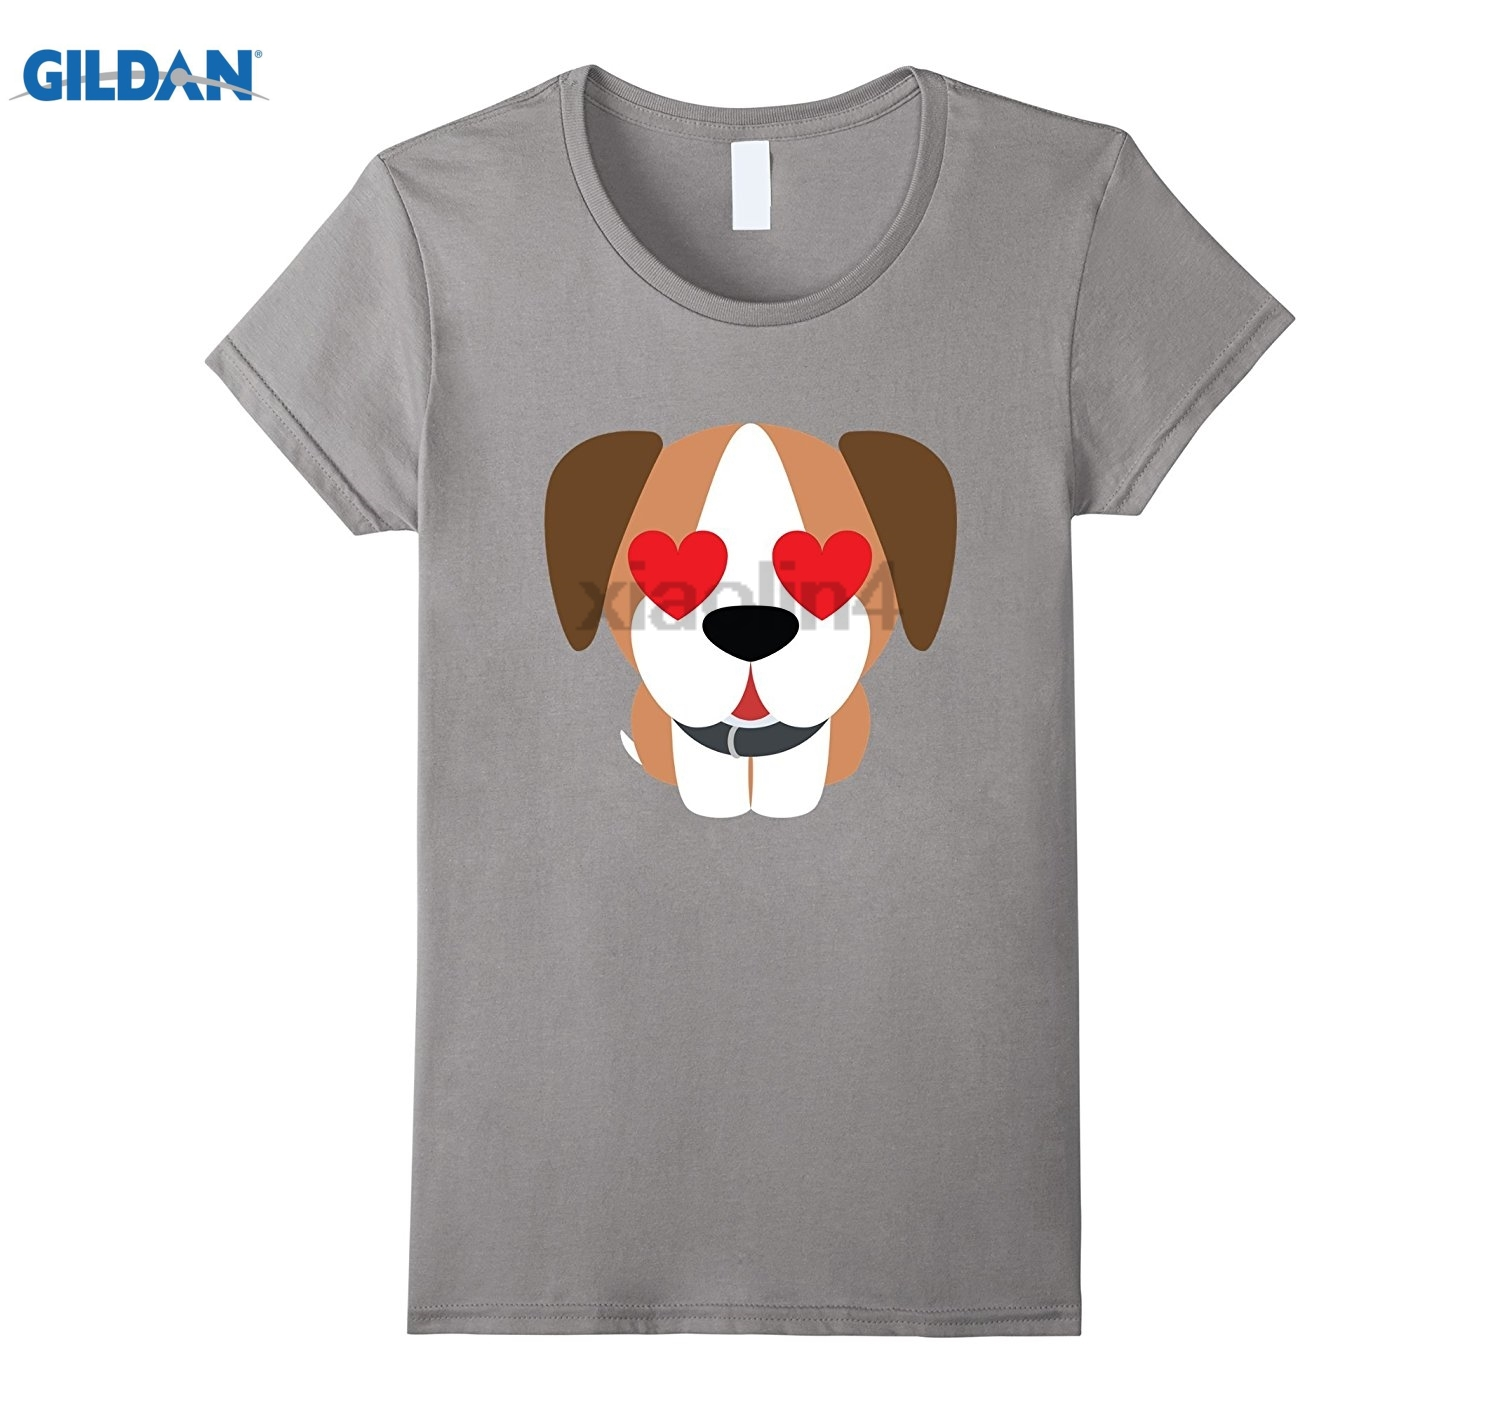 GILDAN Boxer Dog Emoji Heart & Love Eye Shirt T-Shirt Tee Summer novelty cartoon T-shirt ...